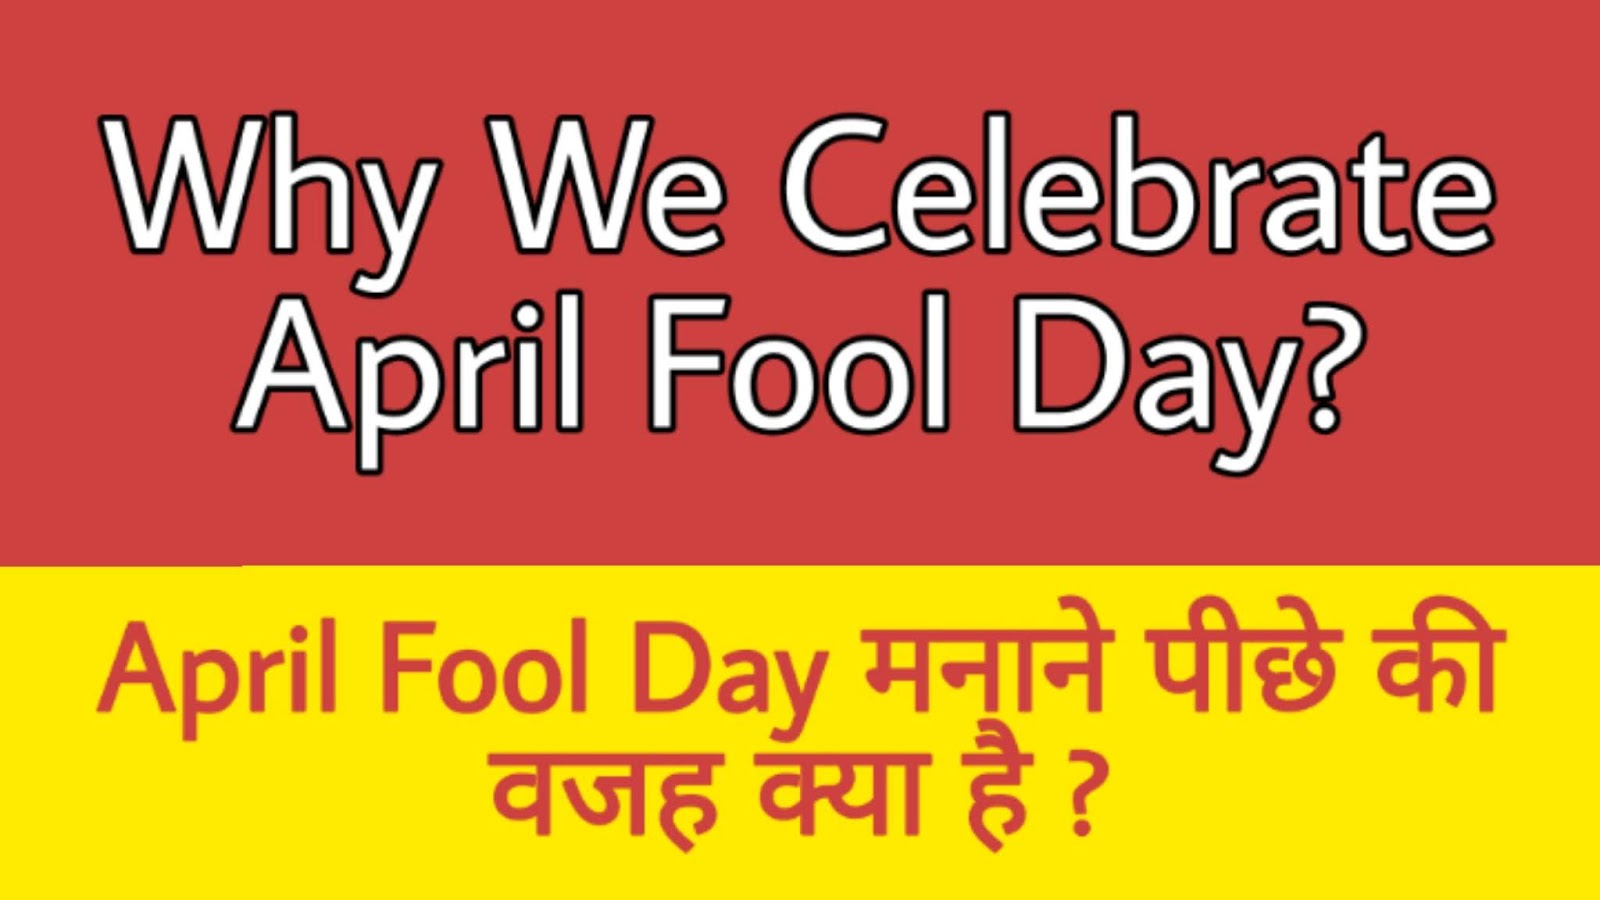 April fool,april fool day,Why we celebrate April Fool's Day